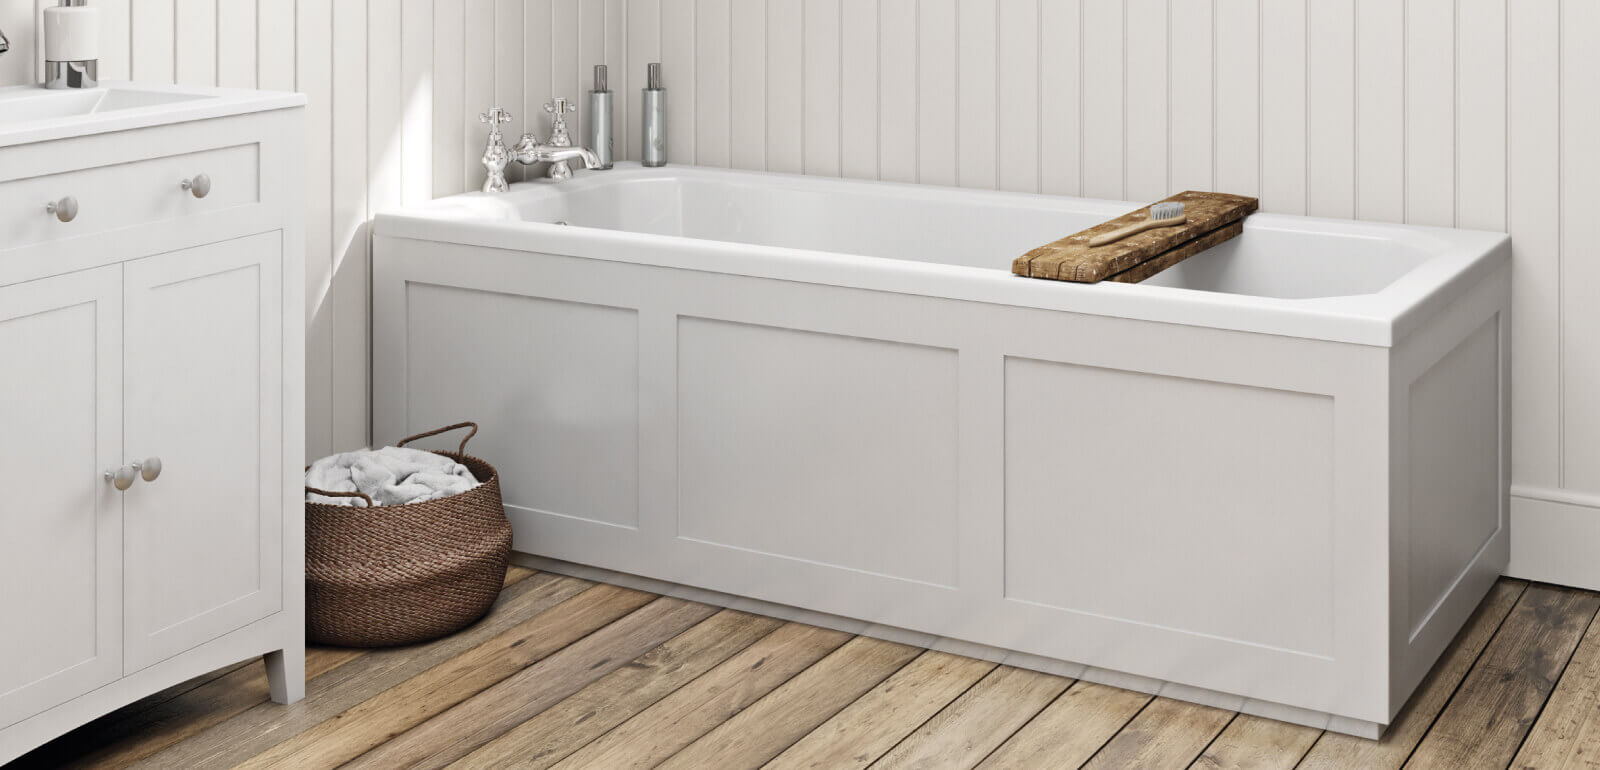 understand article bathroom material types easy wht s surface range blog materials to which but freestanding you lullaby different choose best bathtub will solid for help of web its aquatica is not the it